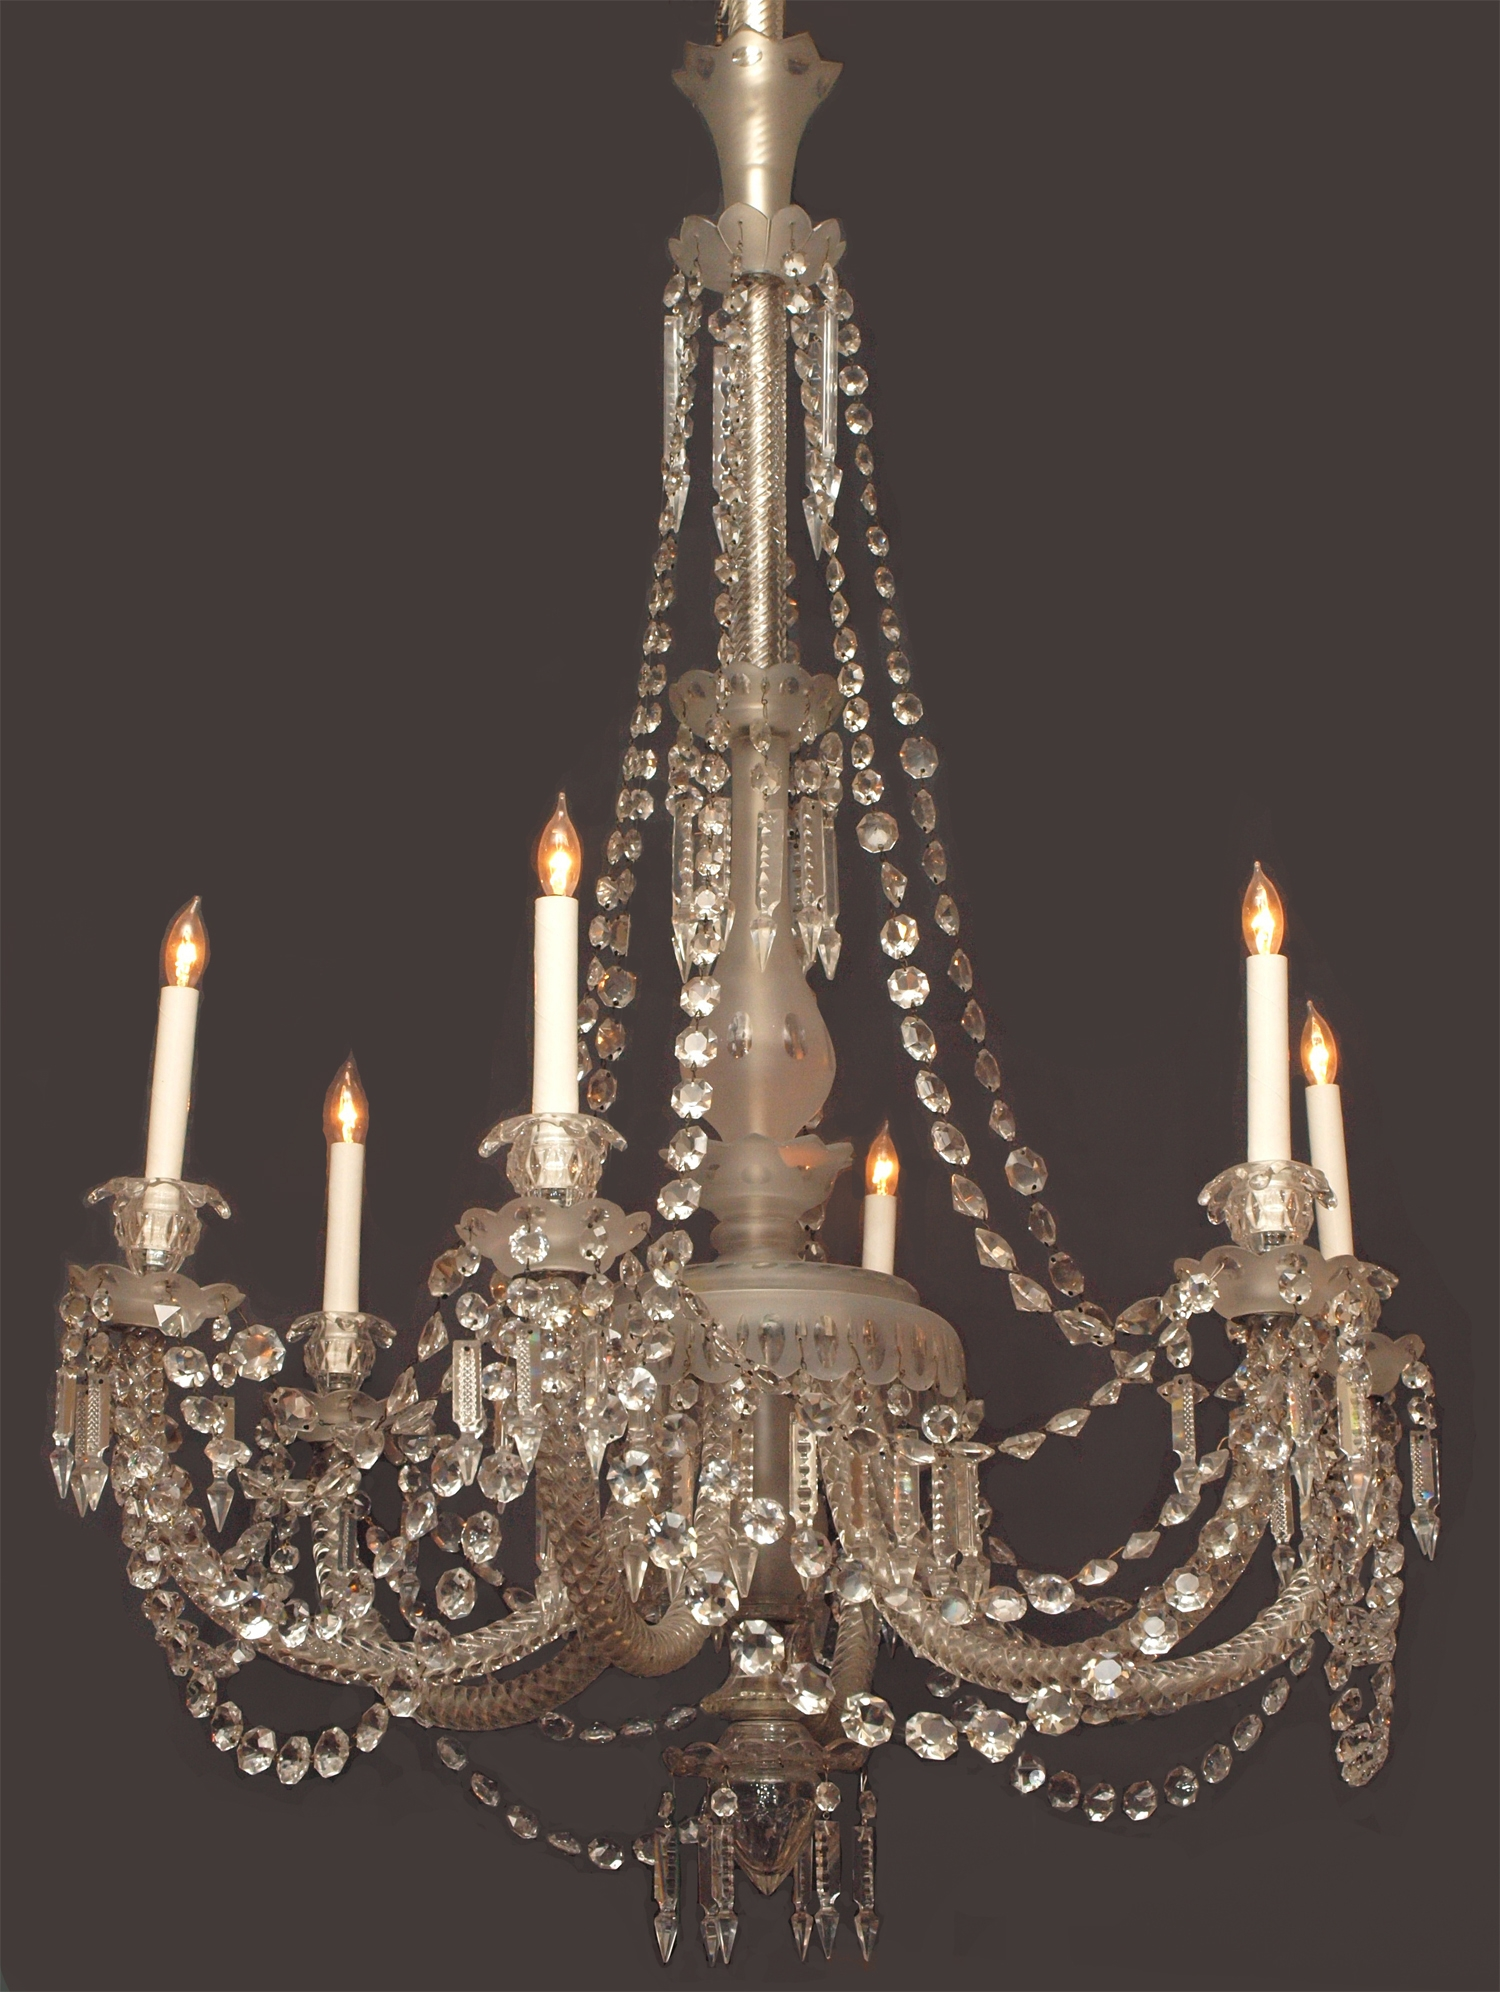 Antique English 19th Century Gasolier Fine Lead Crystal Chandelier Regarding Lead Crystal Chandeliers (Image 5 of 15)